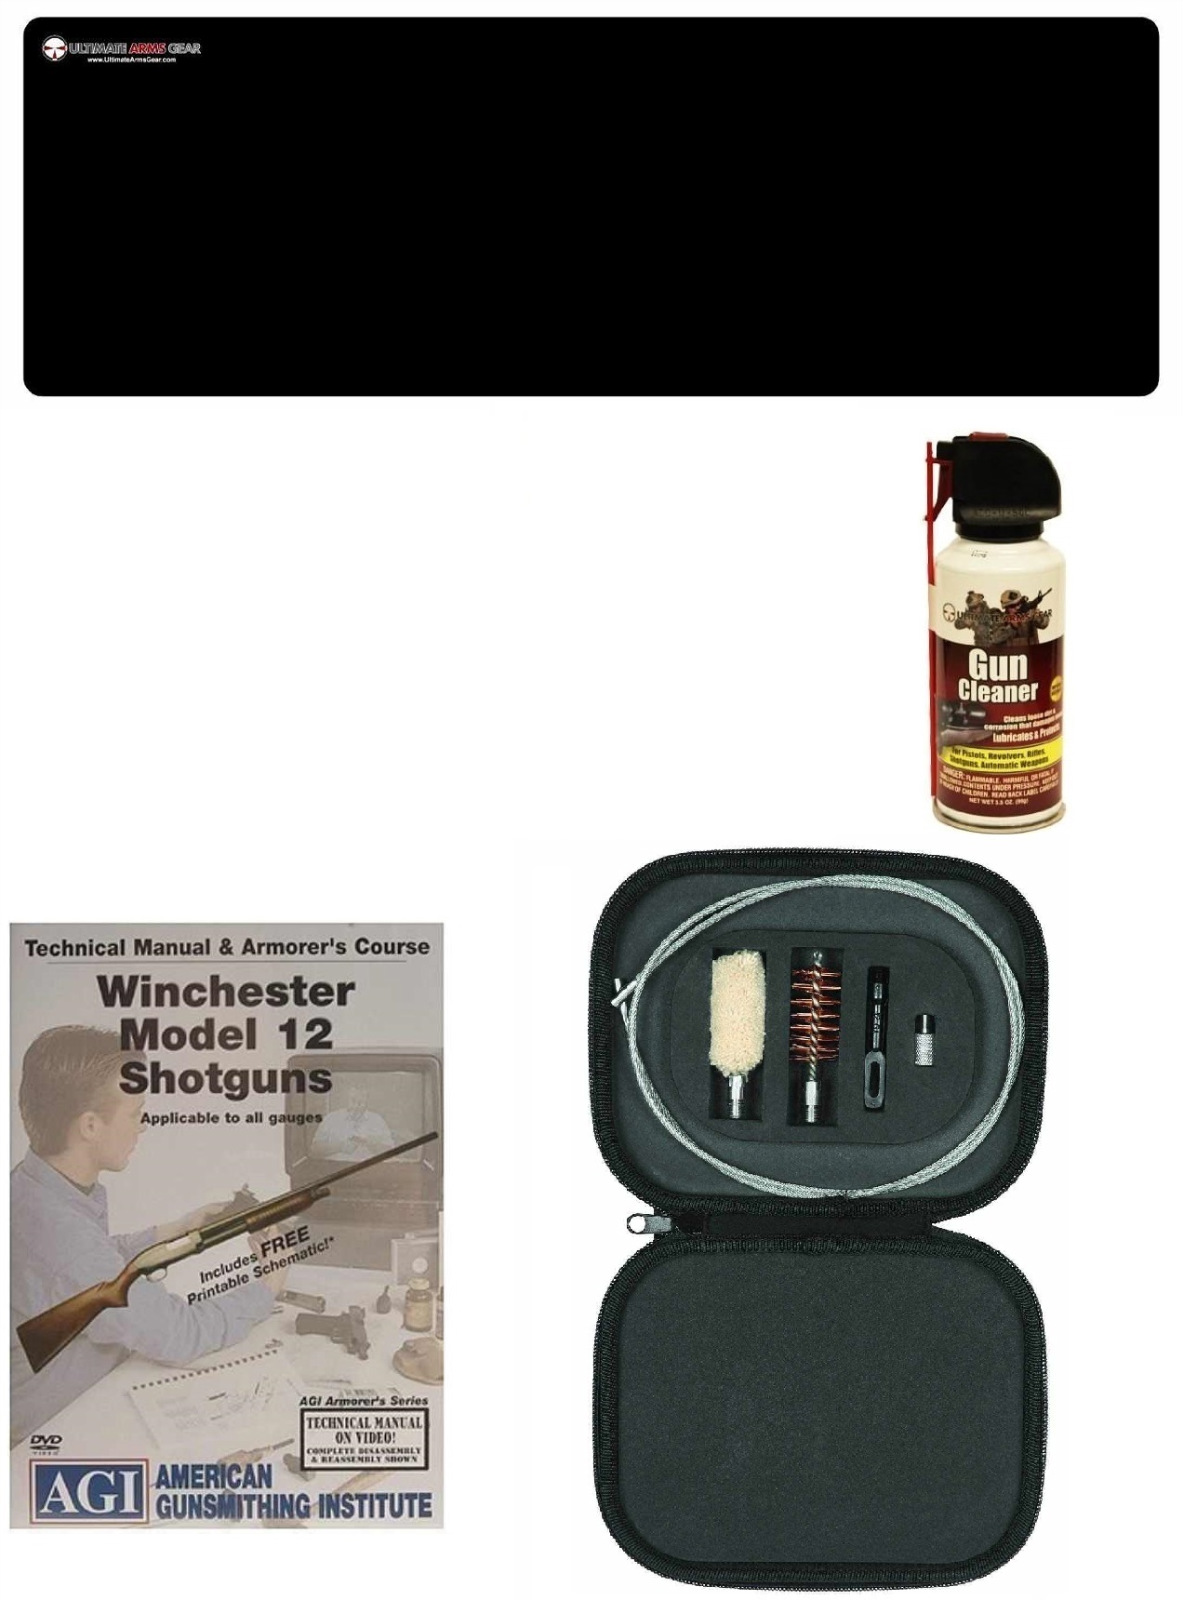 AGI DVD Manual & Armorer Course Winchester Model 12 Shotgun + Ultimate Arms Gear Gunsmith Cleaning Bench Gun Mat + 12 GA... by